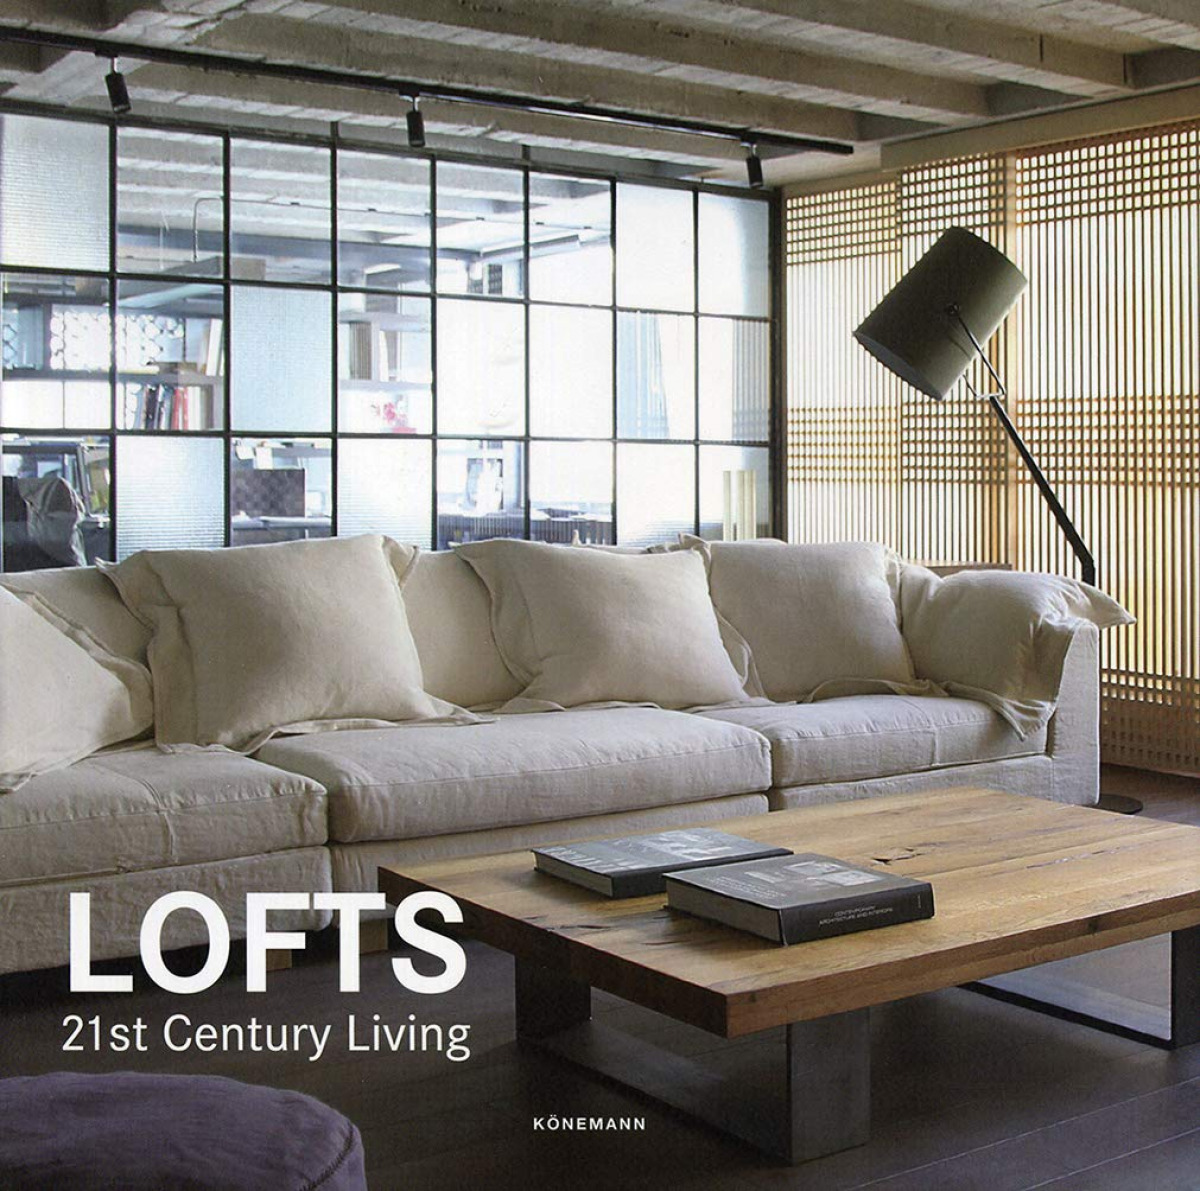 LOFTS 21ST CENTURY